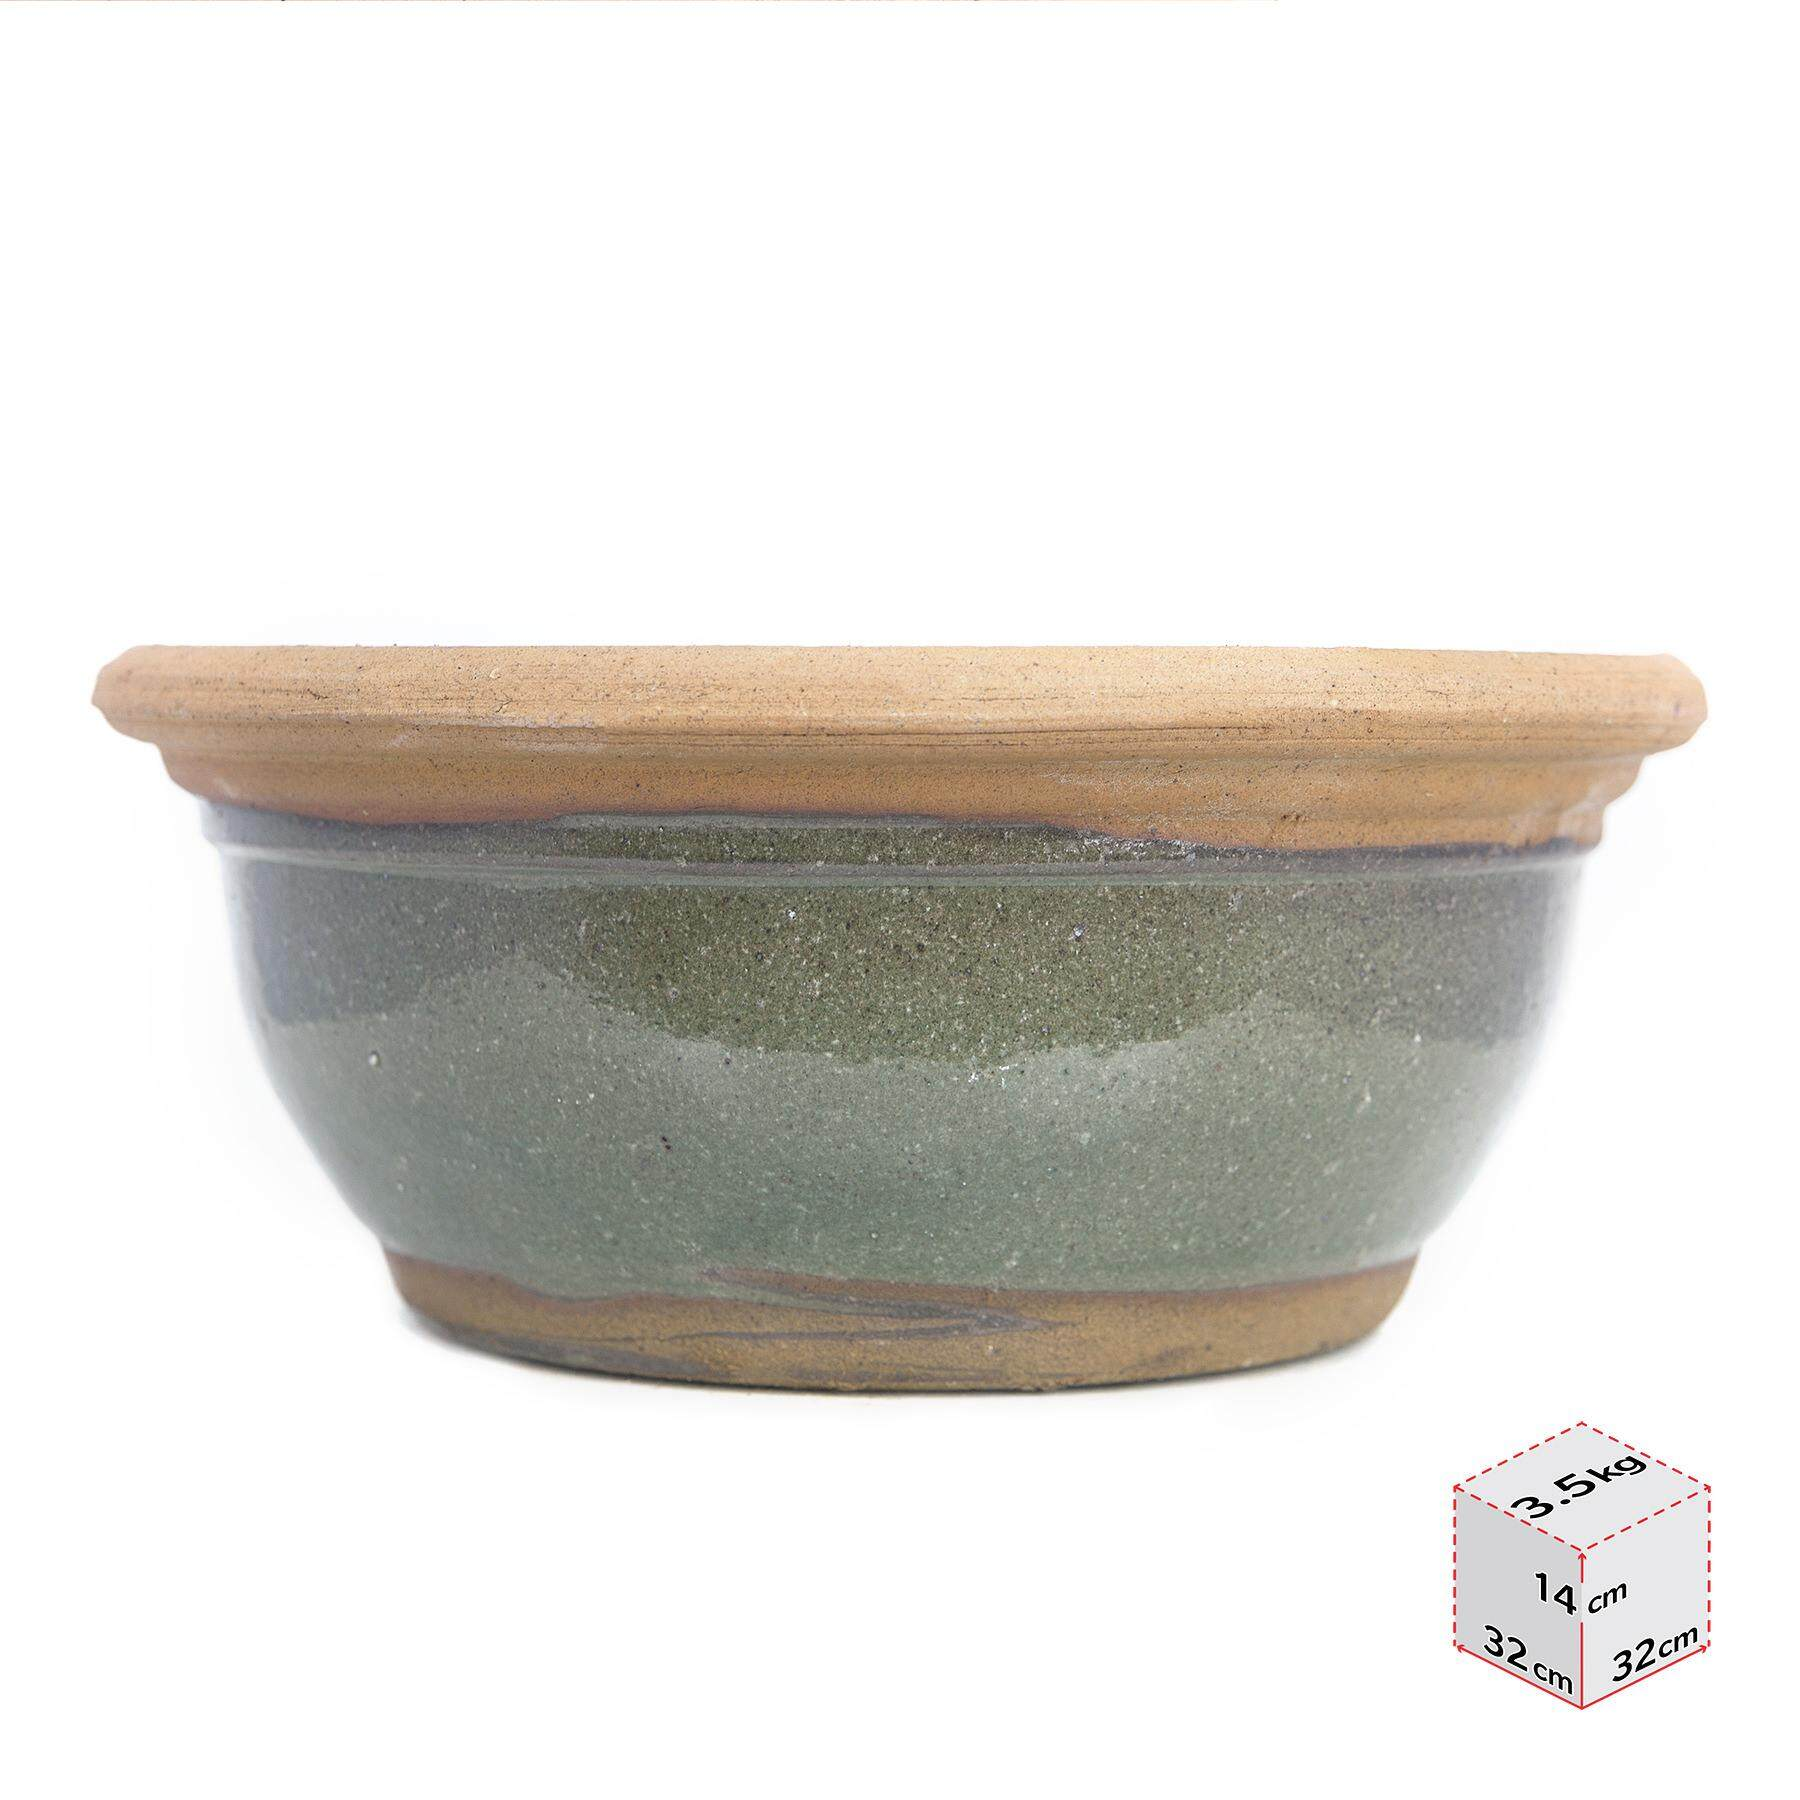 Decorative Garden Pot Pottery Planter Flower Pot for Indoor Outdoor made of Clay Pottery